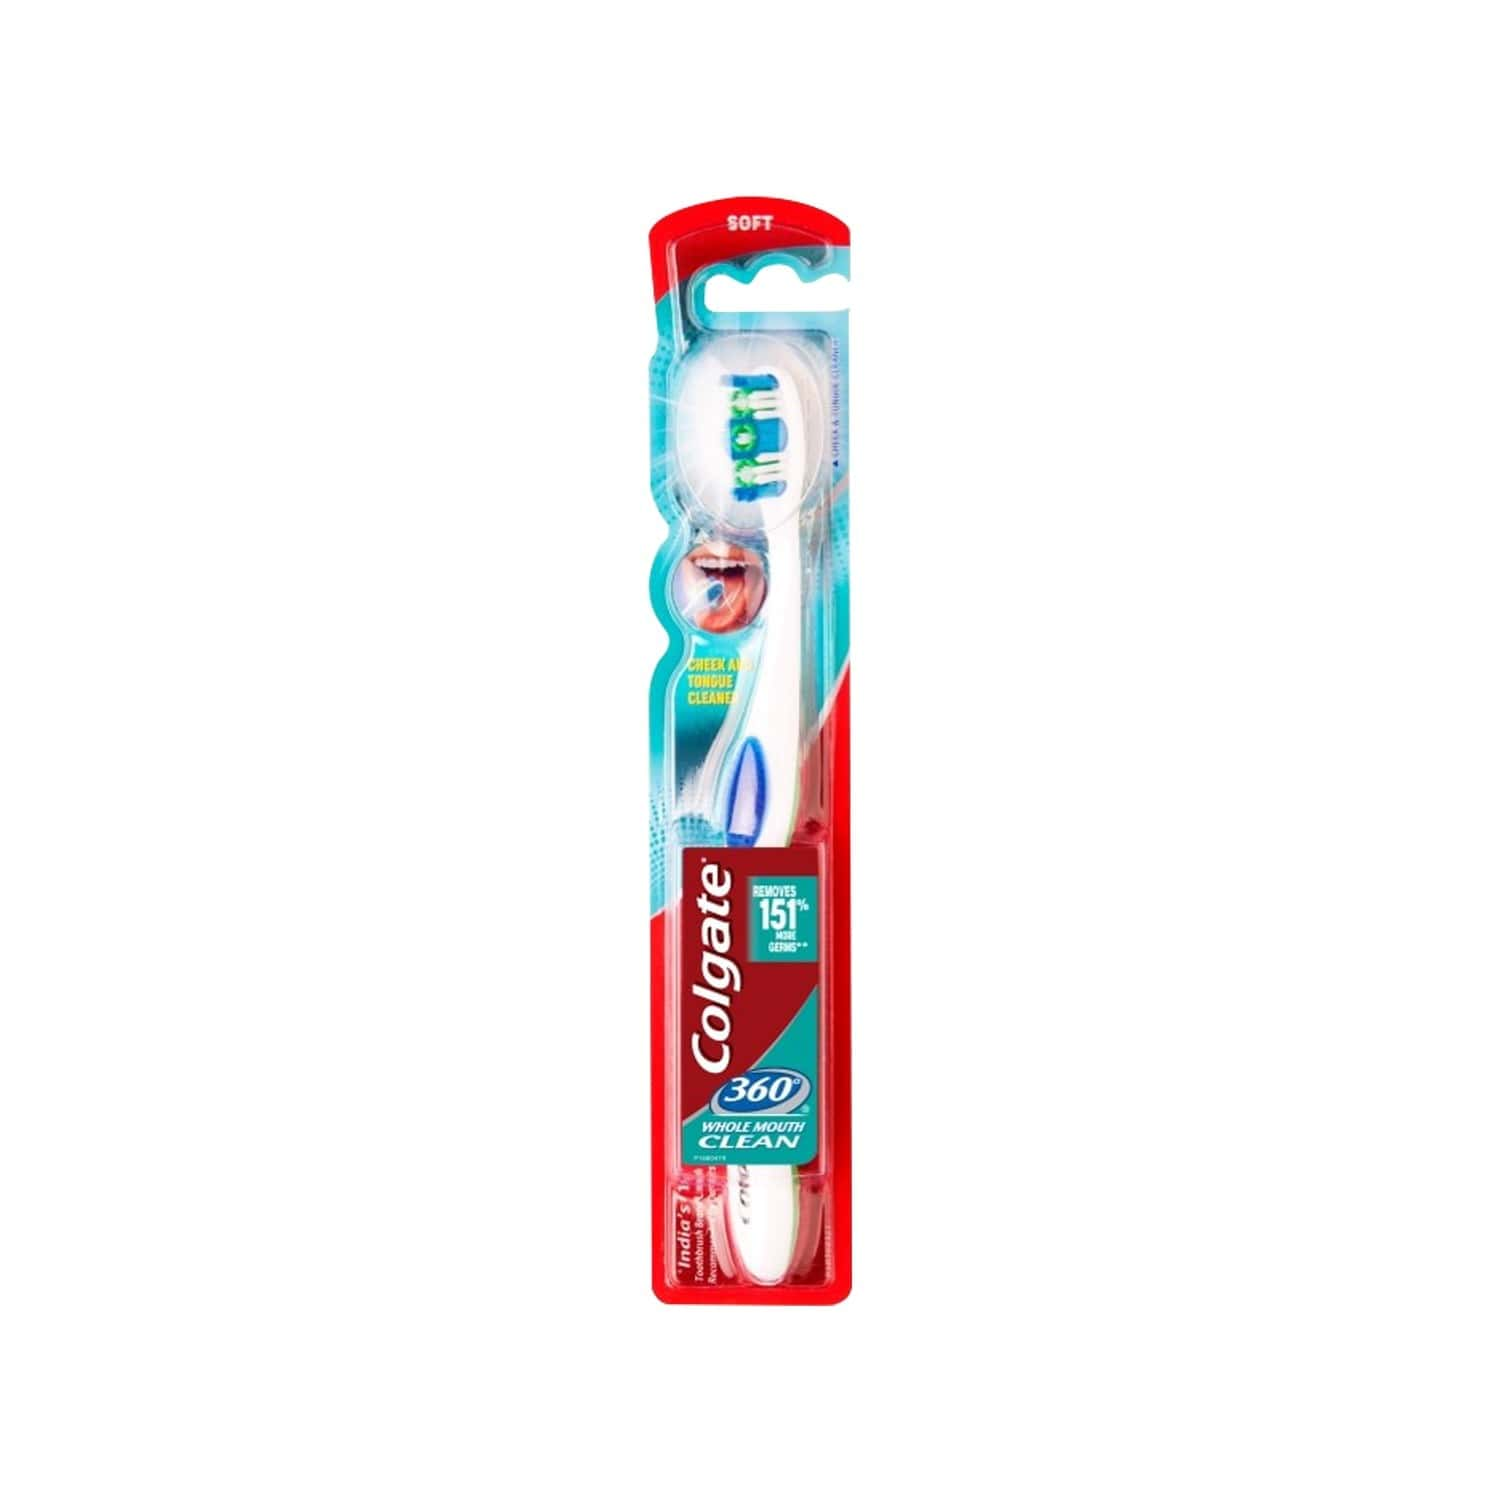 Colgate  Toothbrush 360 Whole Mouth Clean - Soft